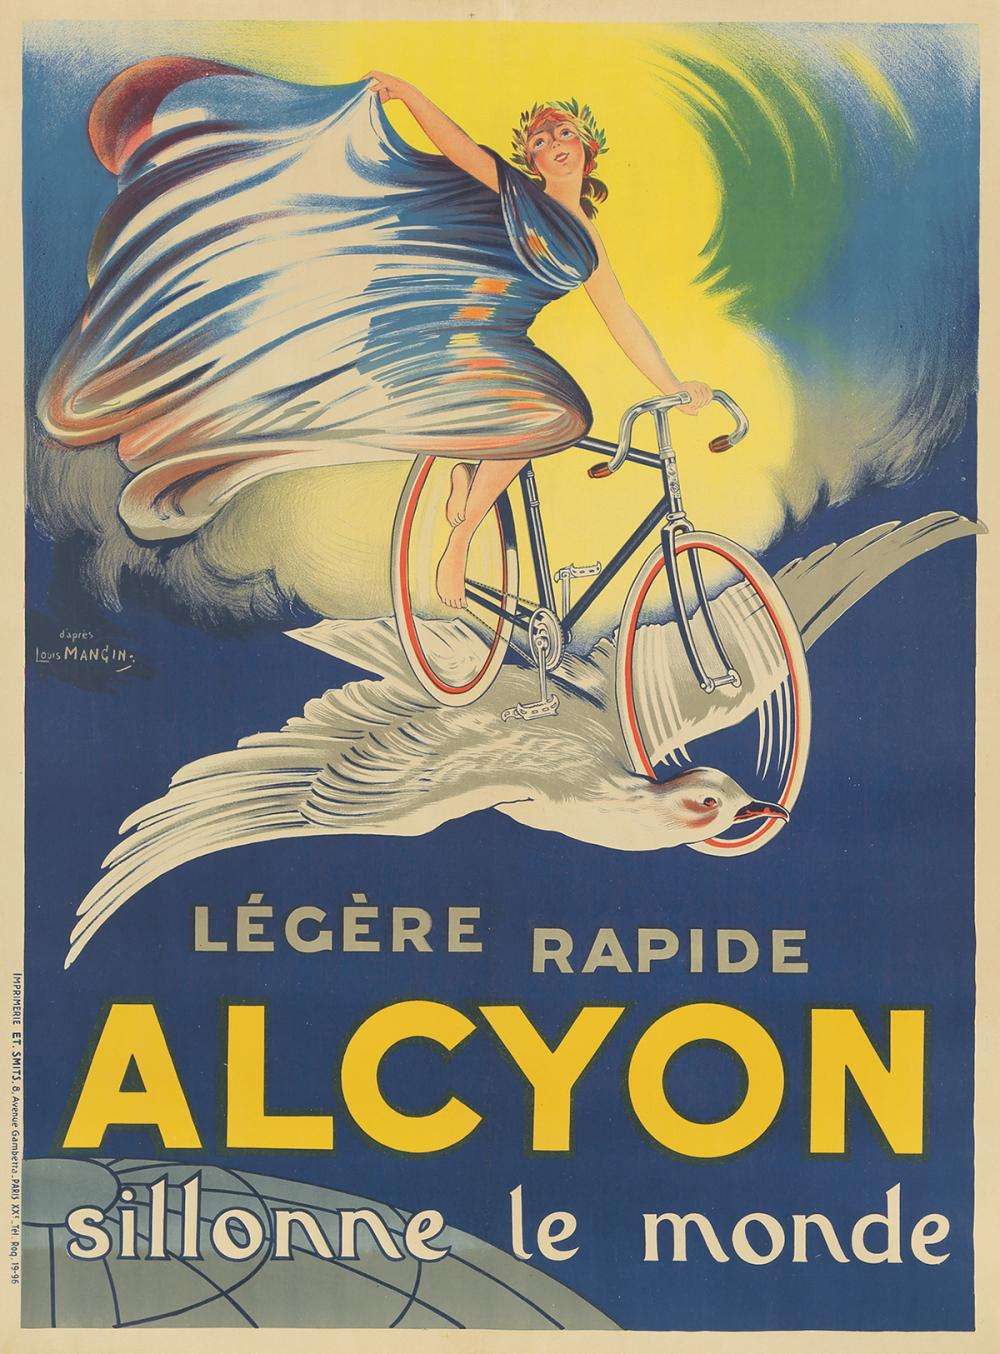 Alcyon. ca. 1900.